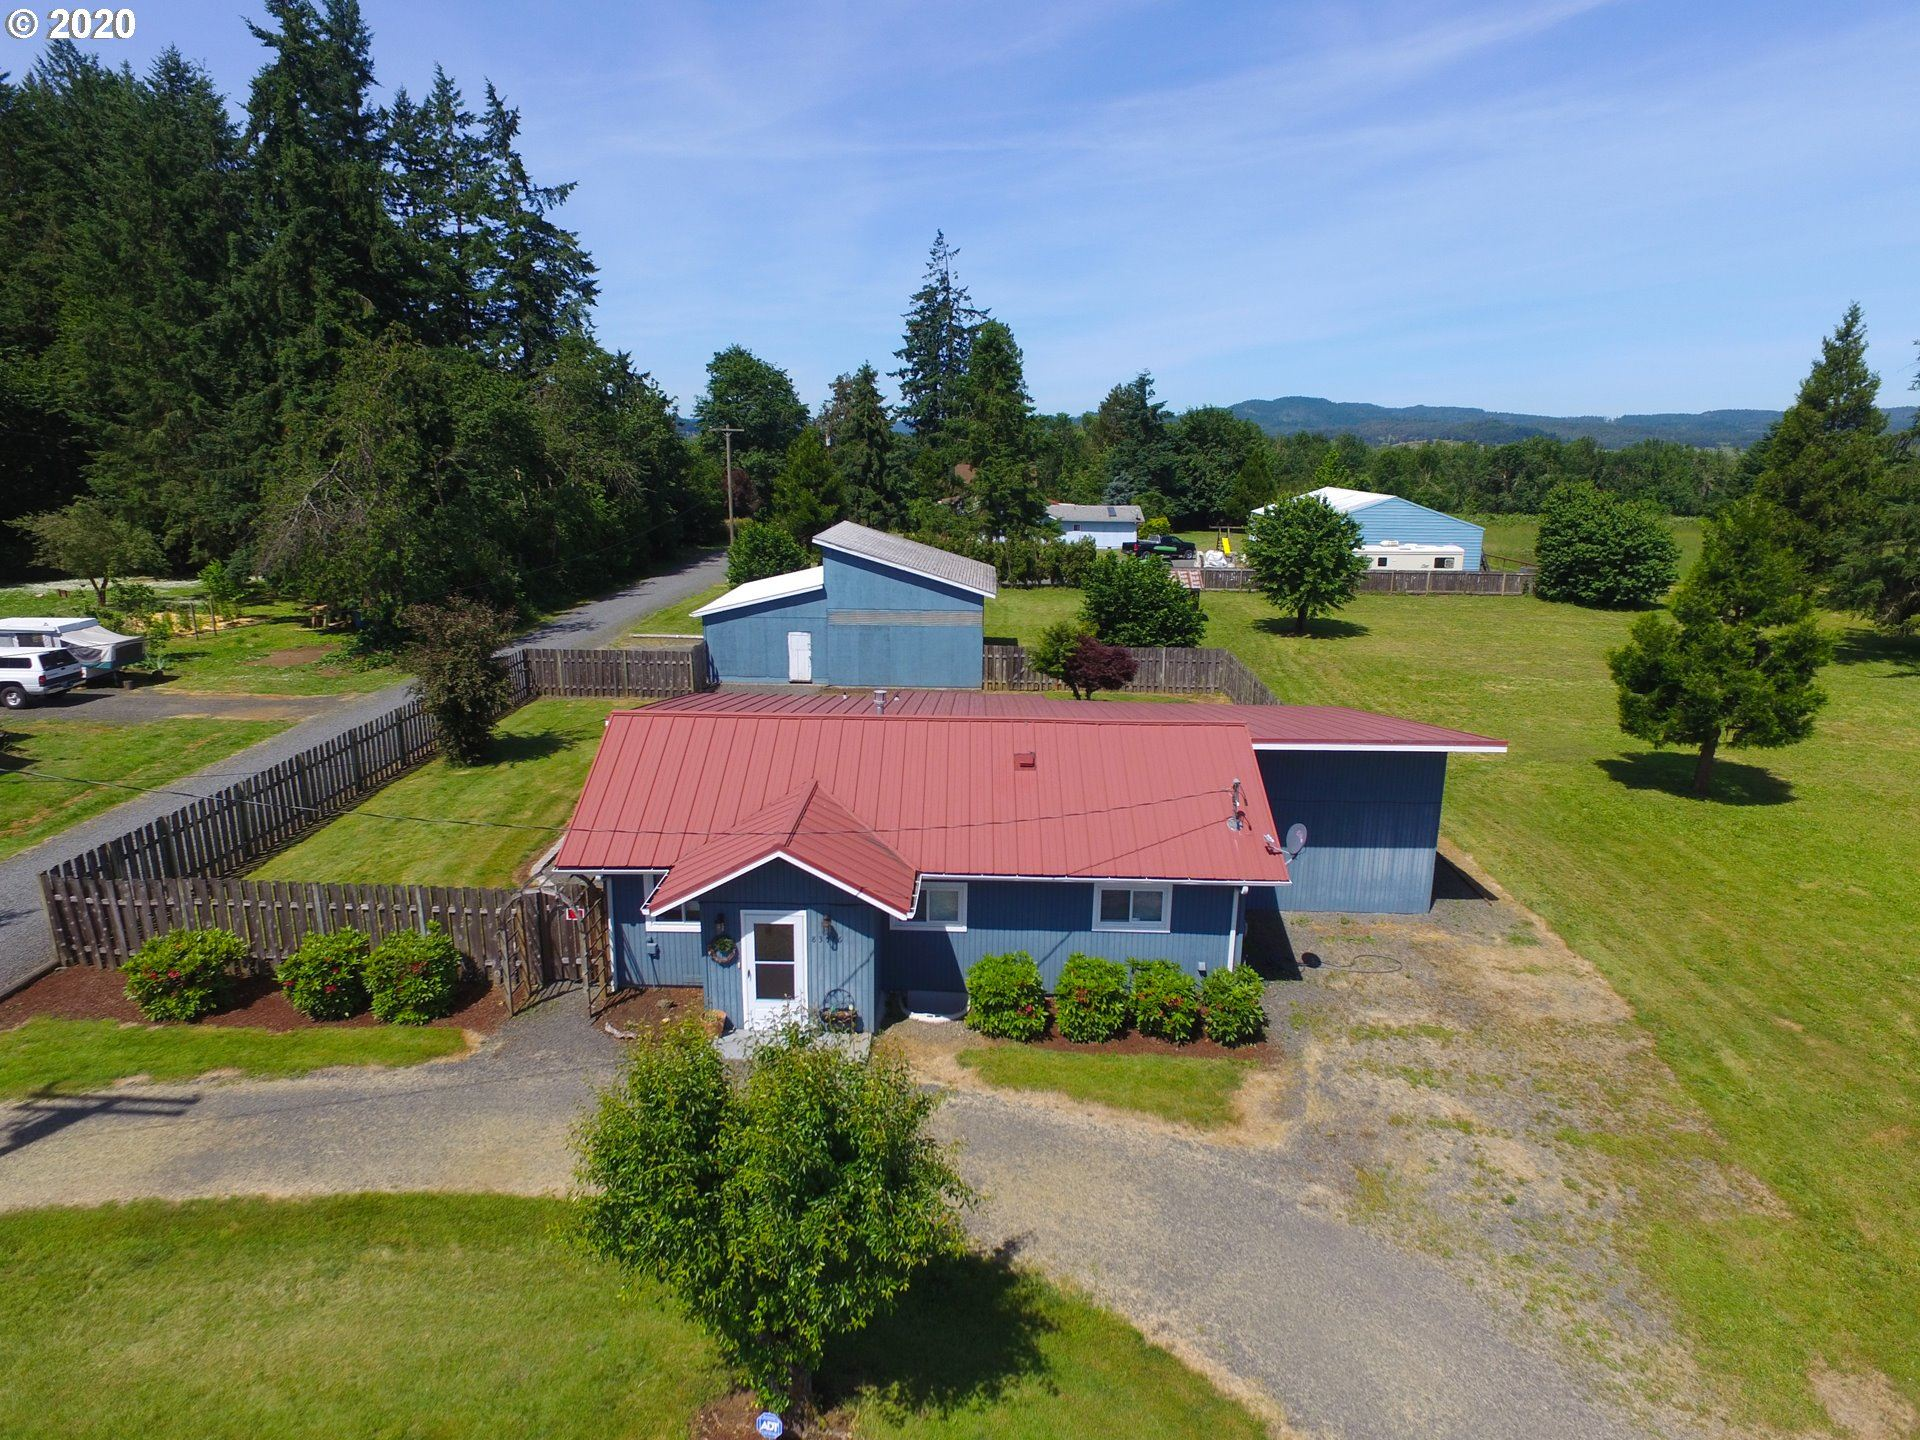 Photo for 83576 N HARVEY RD, Creswell, OR 97426 (MLS # 20377258)